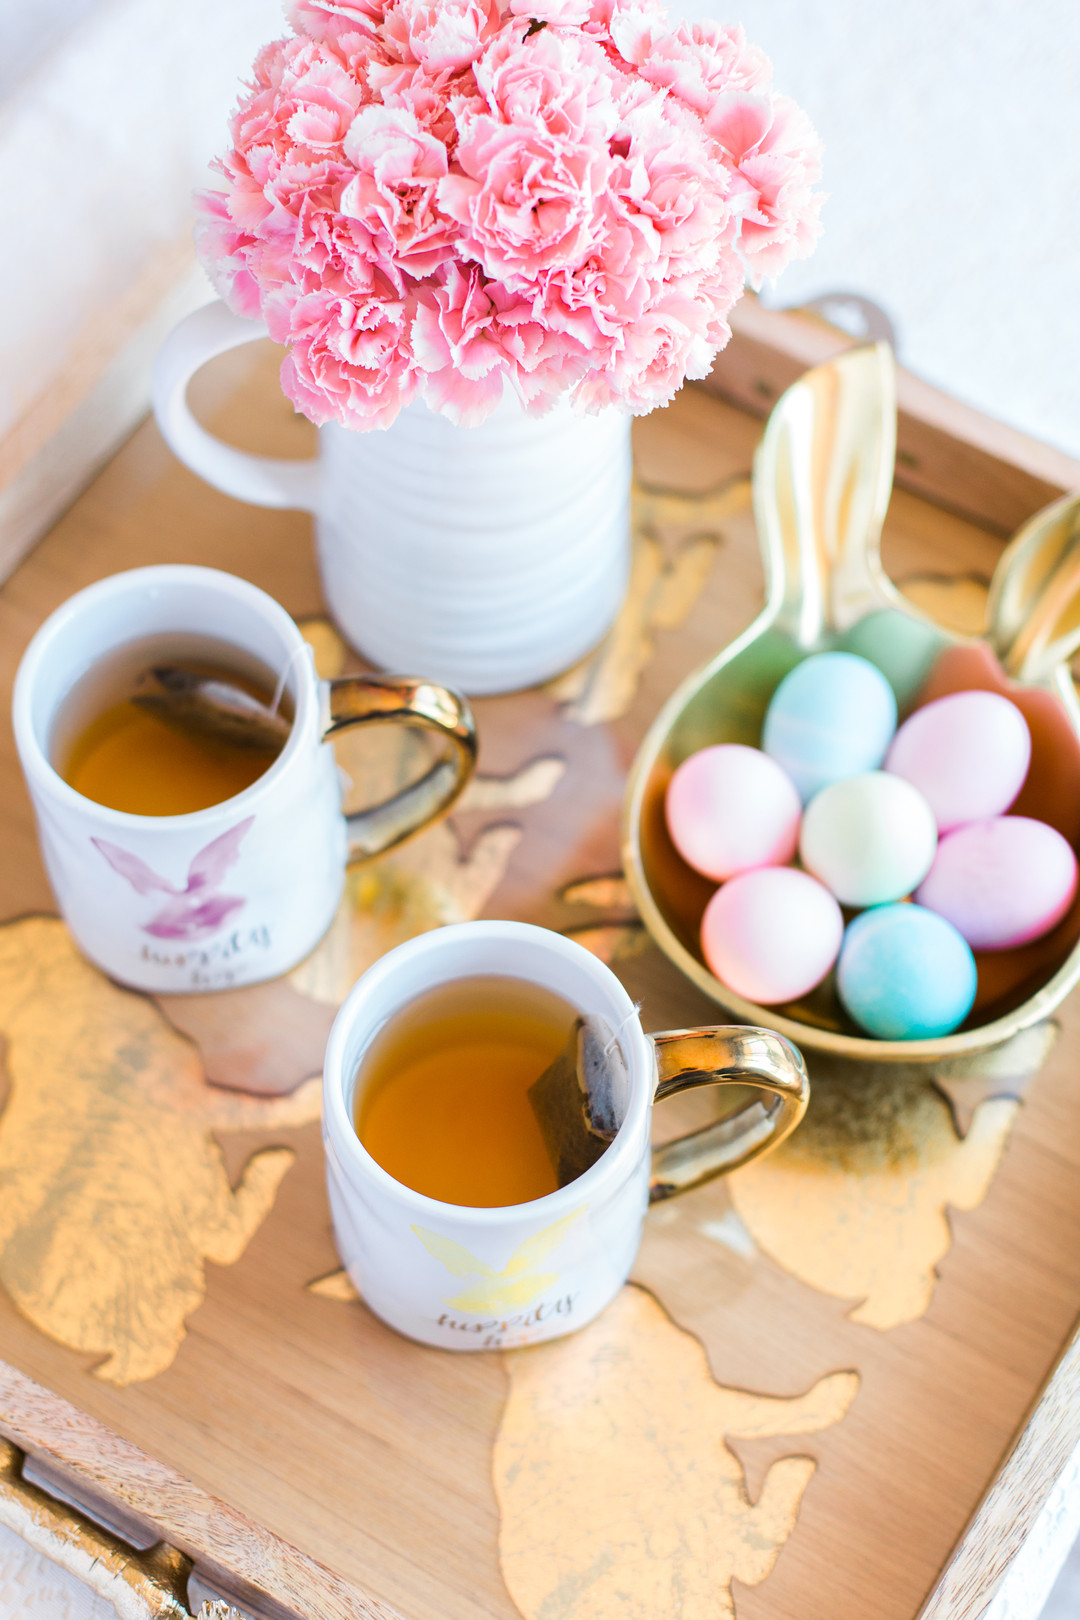 Staal_KristinaStaalPhotography_KristinaStaalPhotographyEasterTablescape201636_big Easy Entertaining: Easter Brunch Inspiration for Two